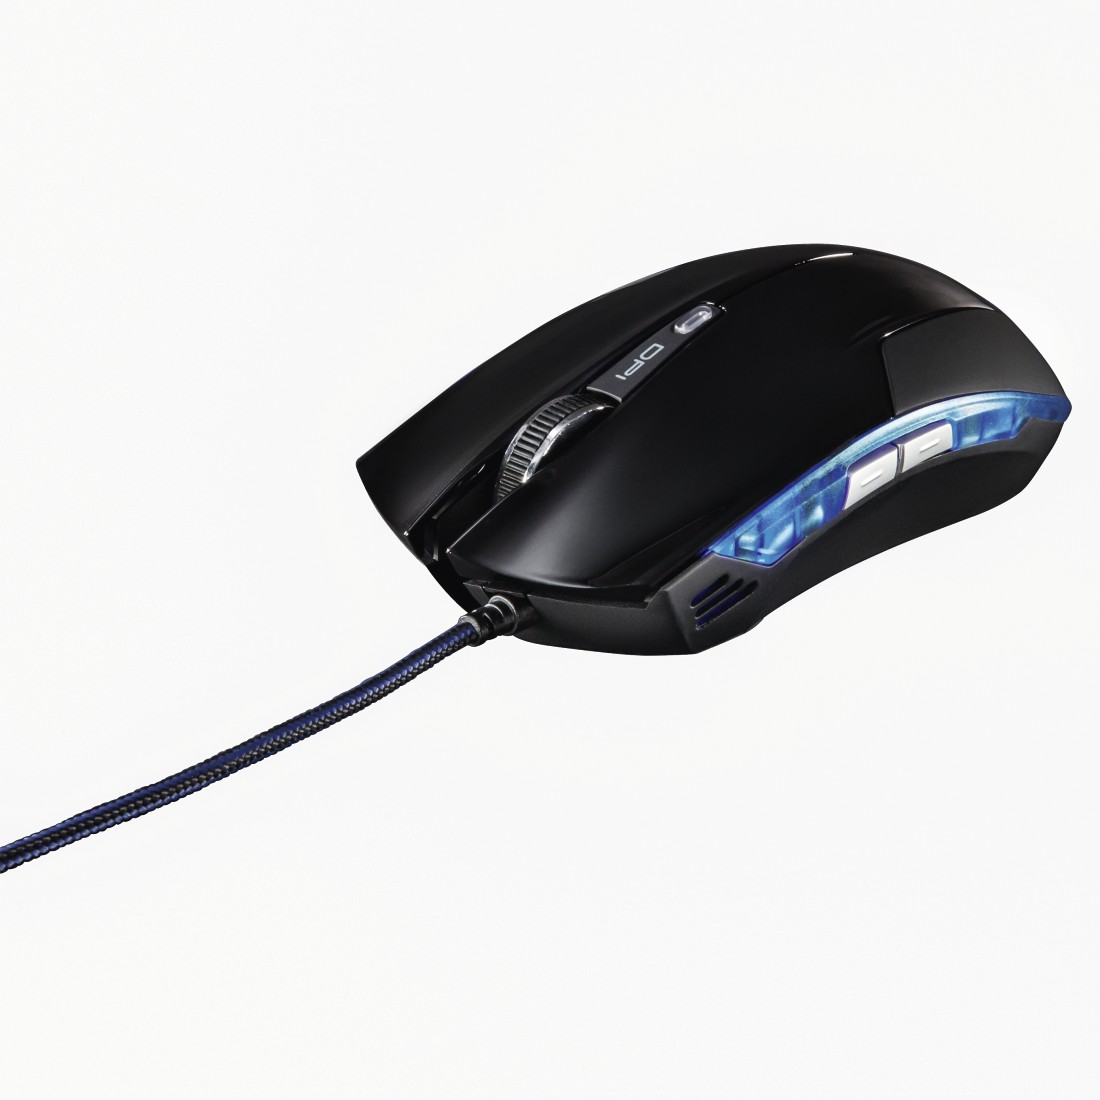 abx3 High-Res Image 3 - Hama, uRage Gaming Mouse